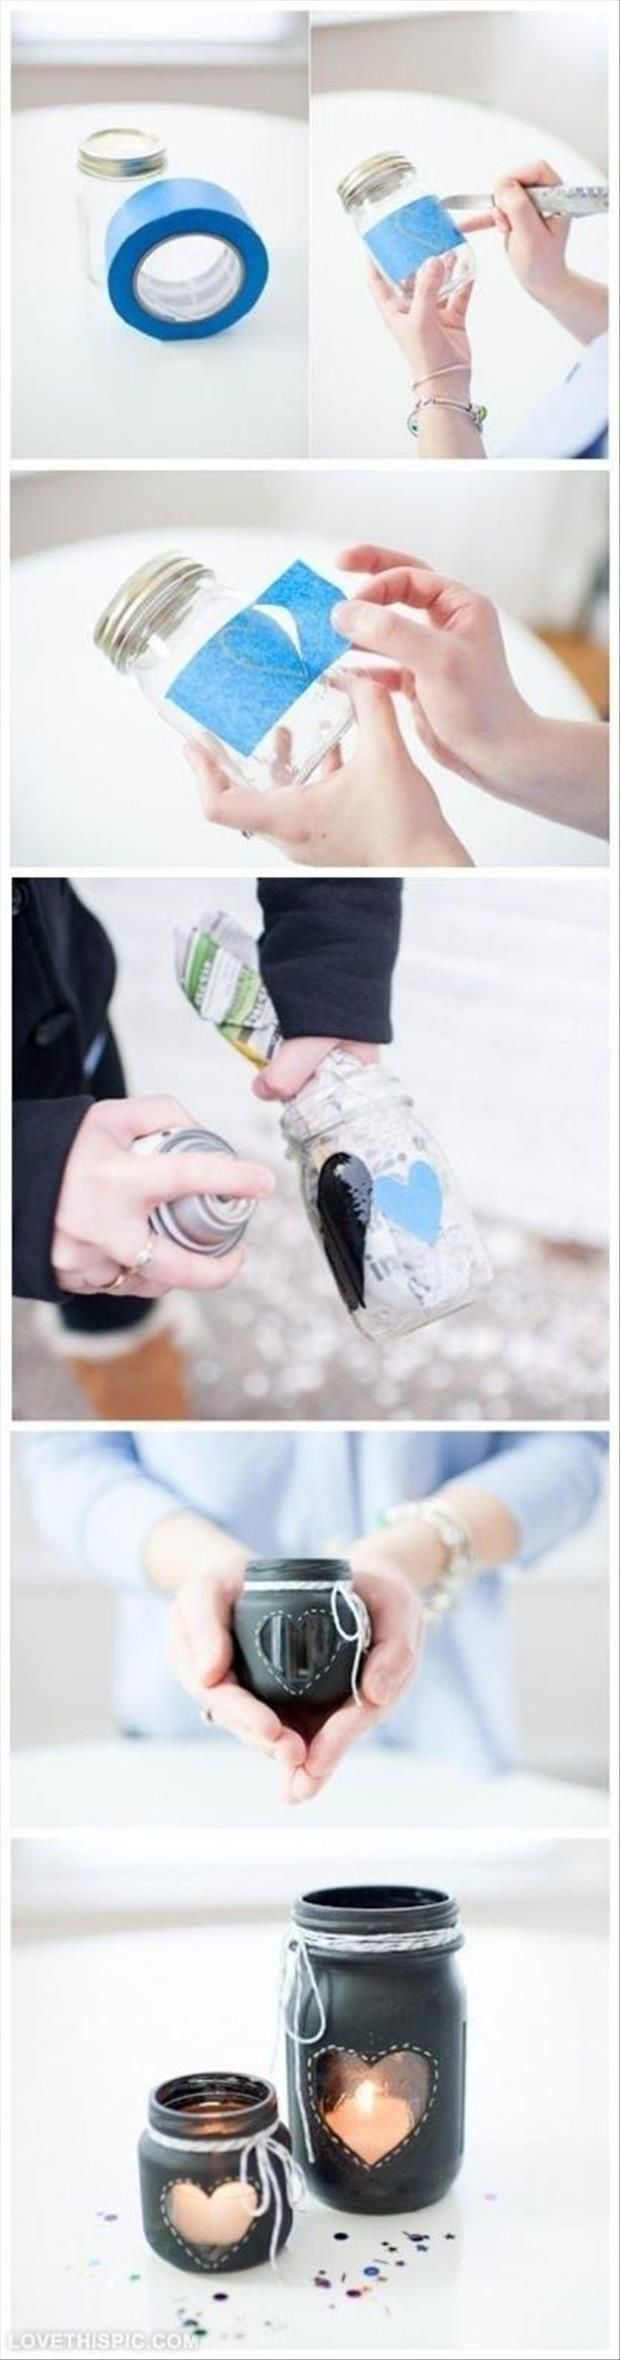 Simple and beautiful, you could use this idea for bigger bottles or other clear things in your home...  CUTE